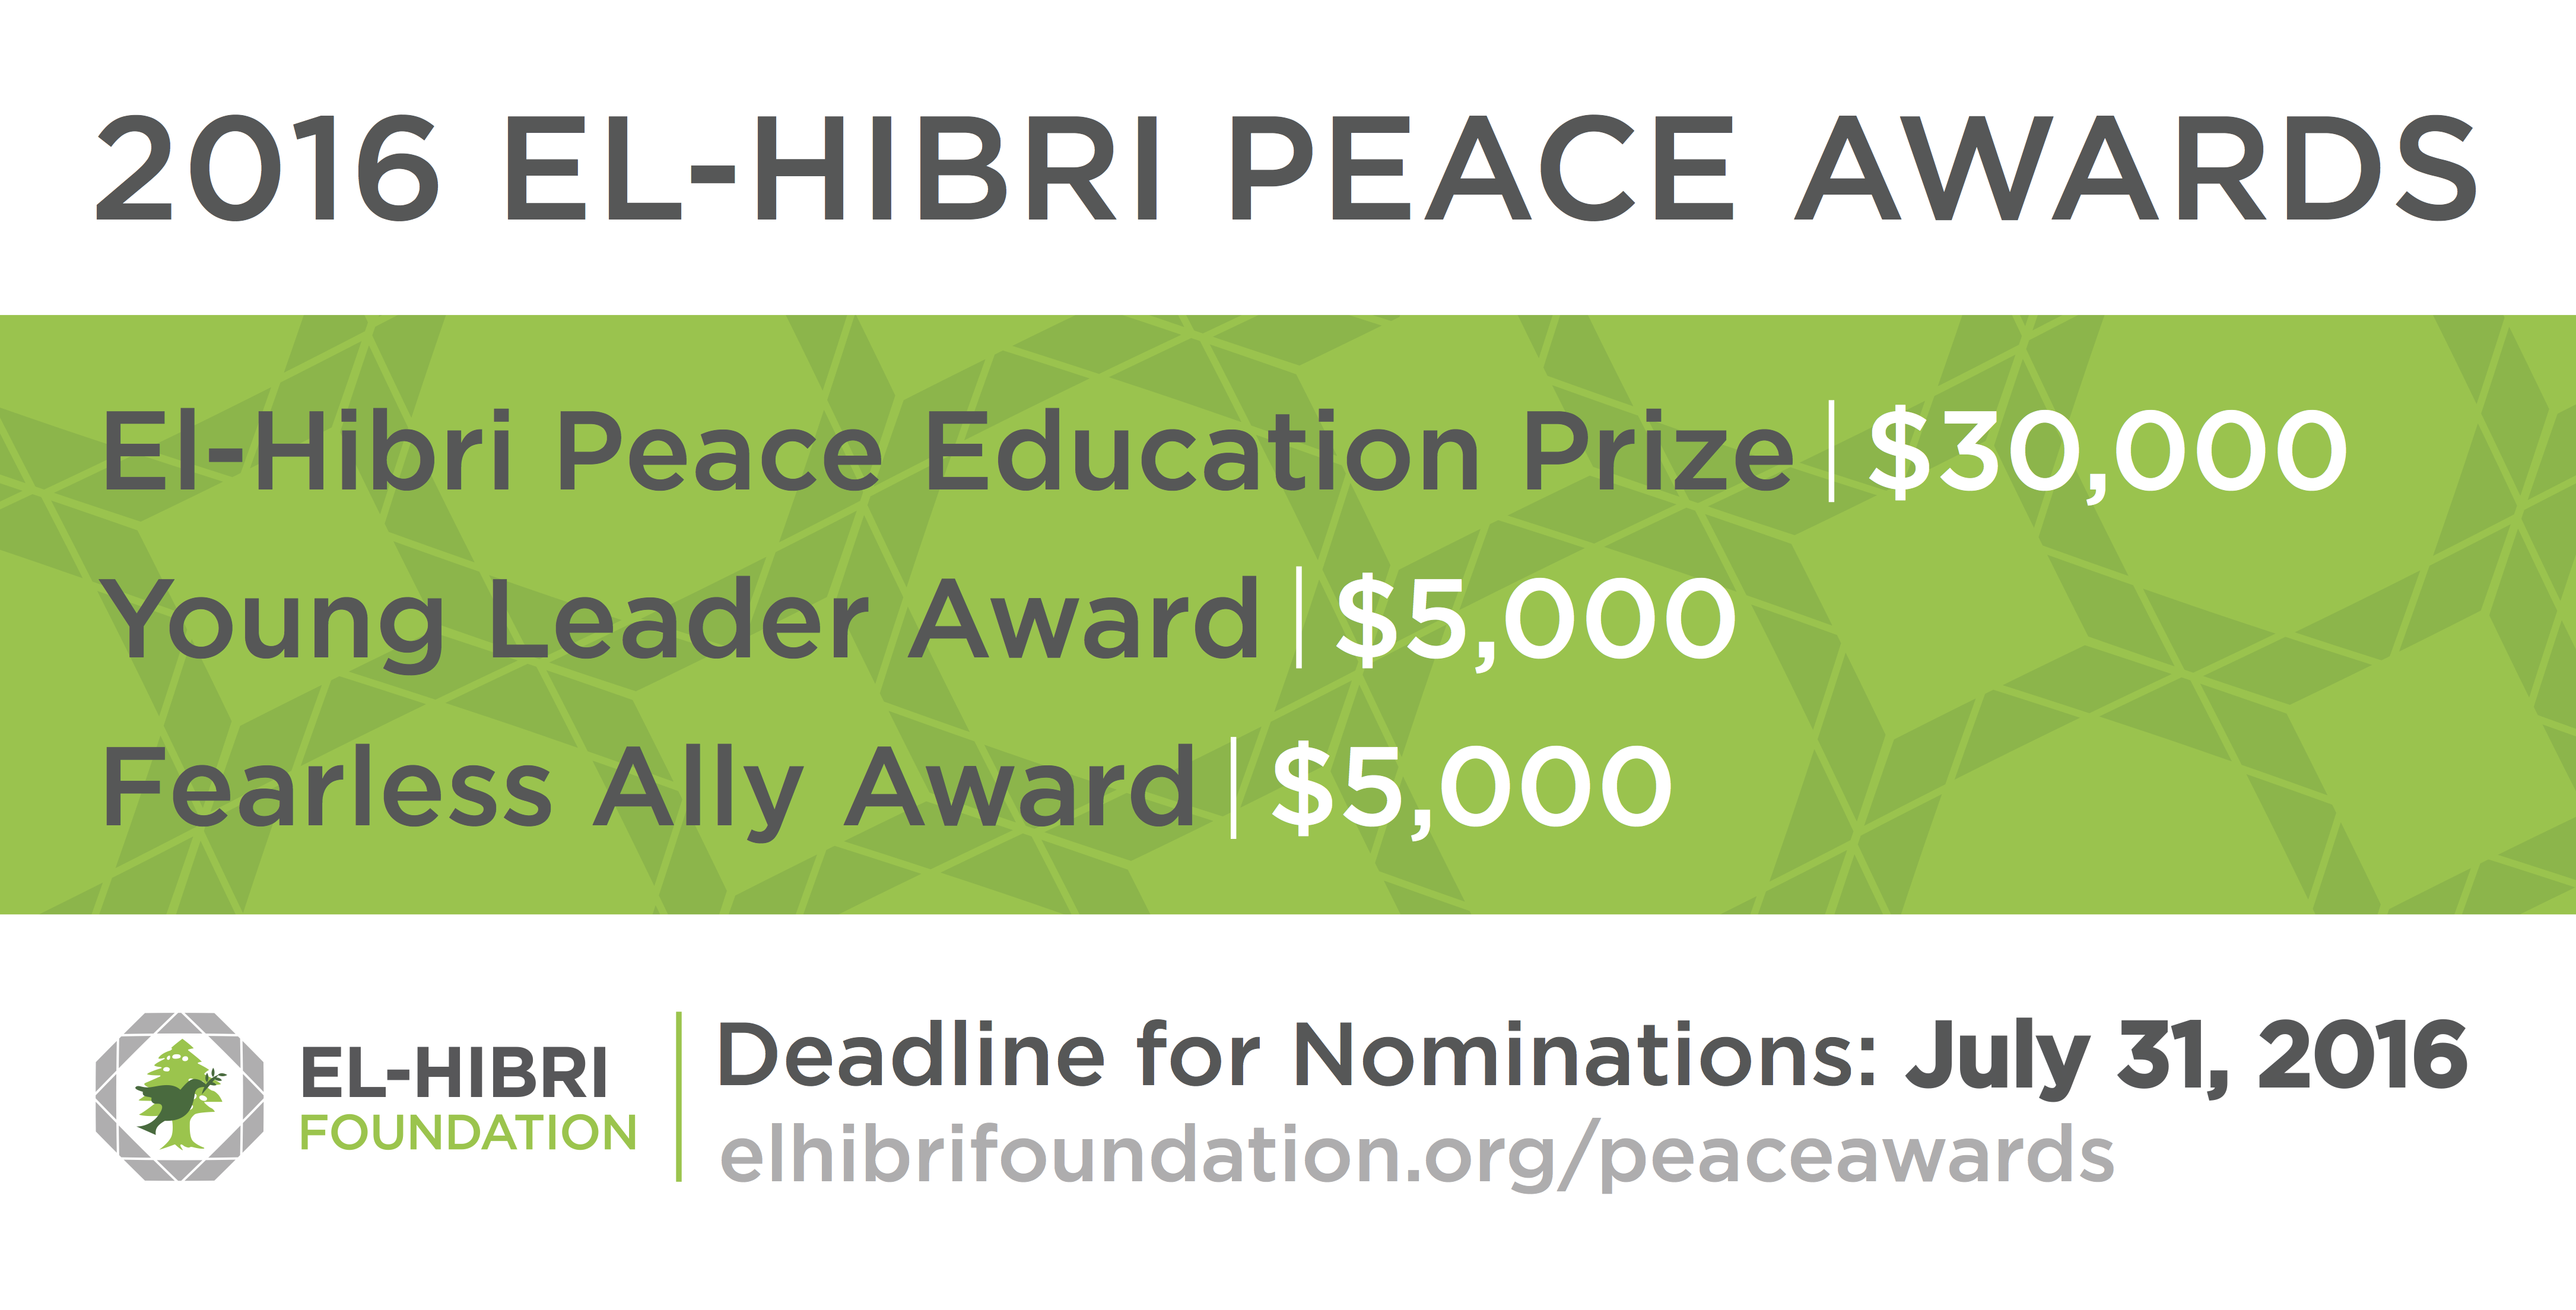 Ehf   2016 peace awards banner   tw   6 28 16